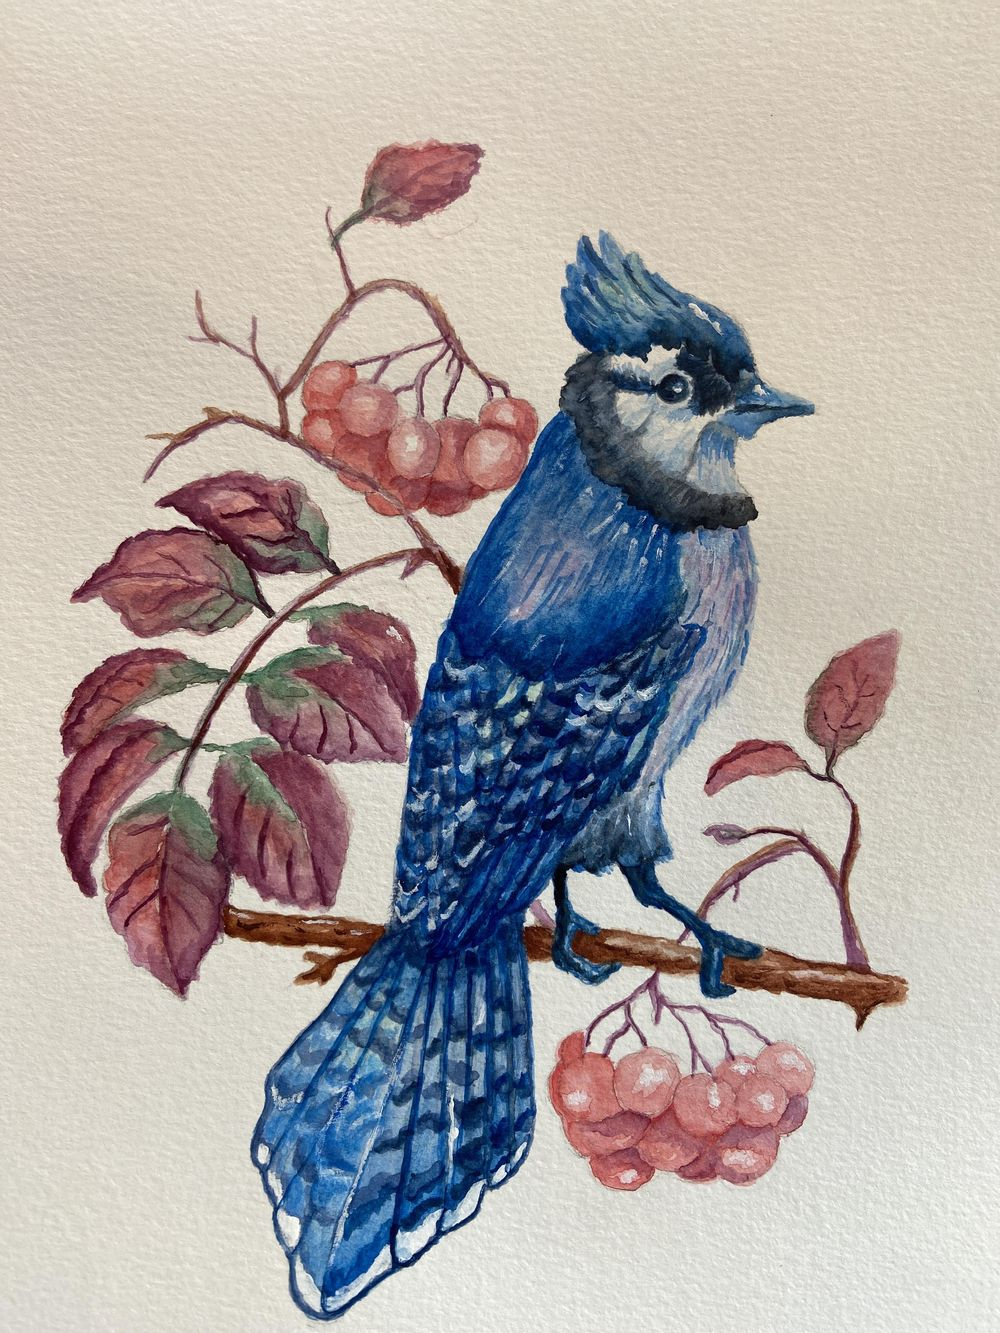 Watercolor blue jay - image 1 - student project